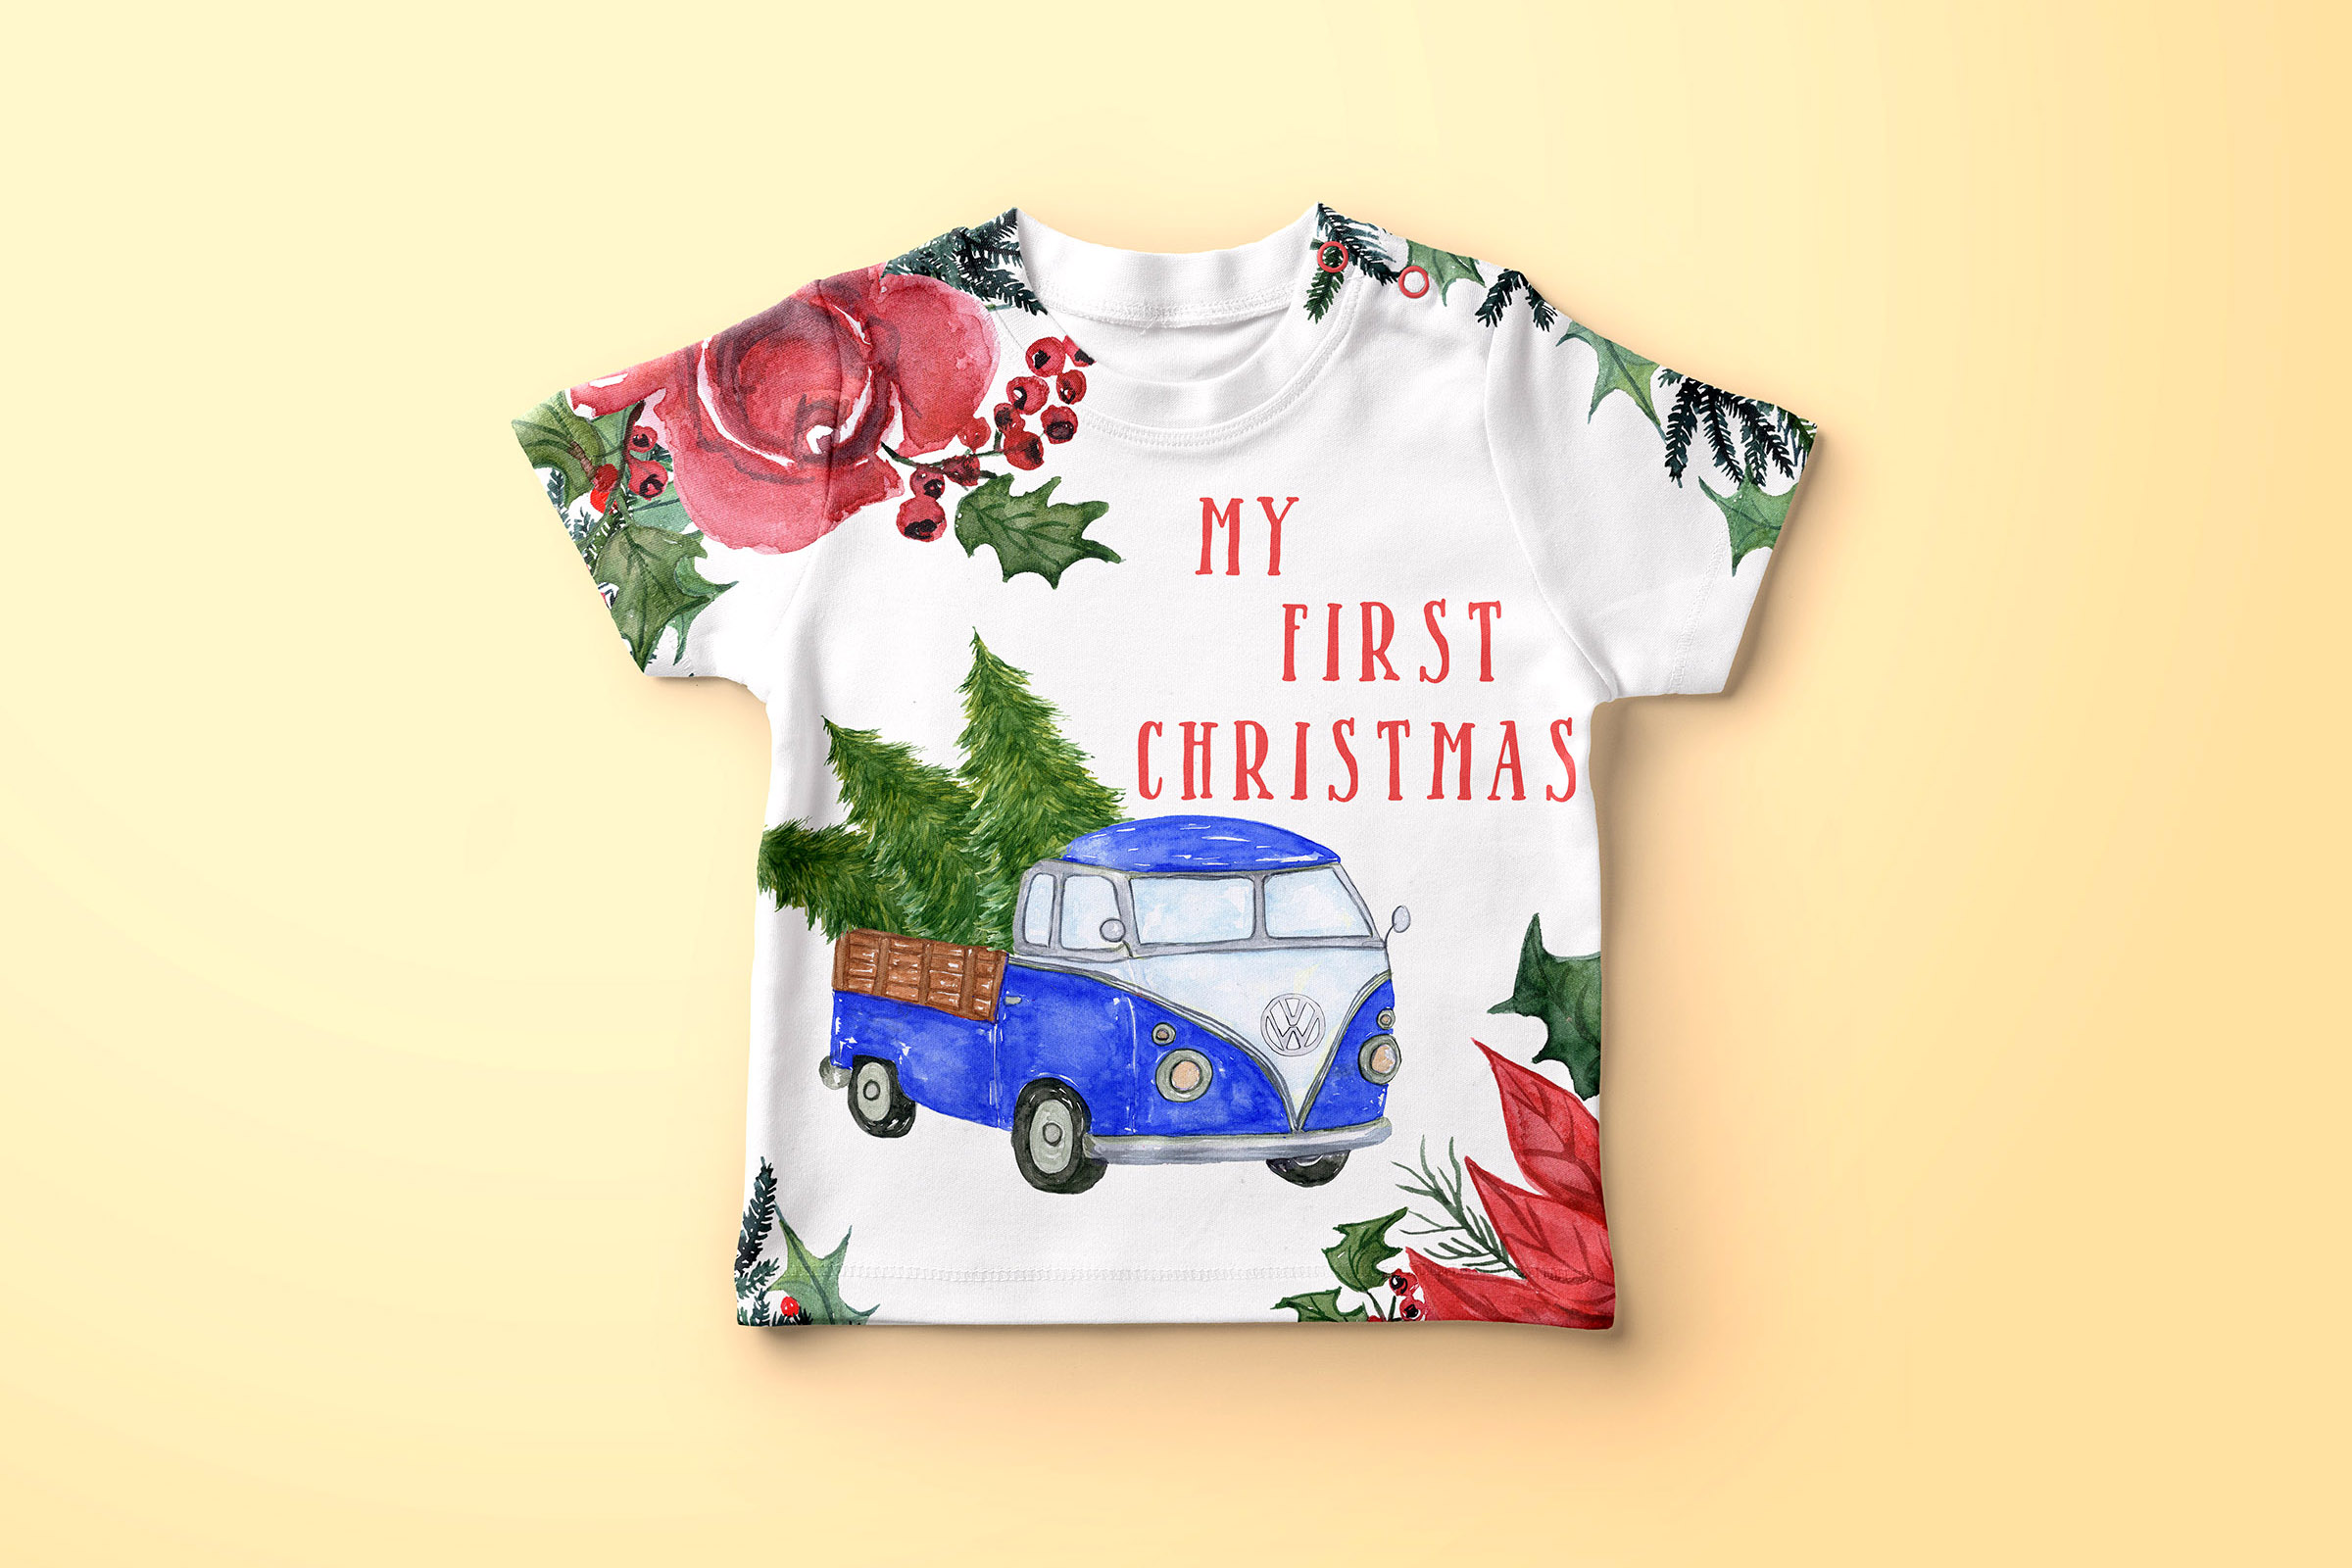 Watercolor Christmas Trucks clipart example image 3